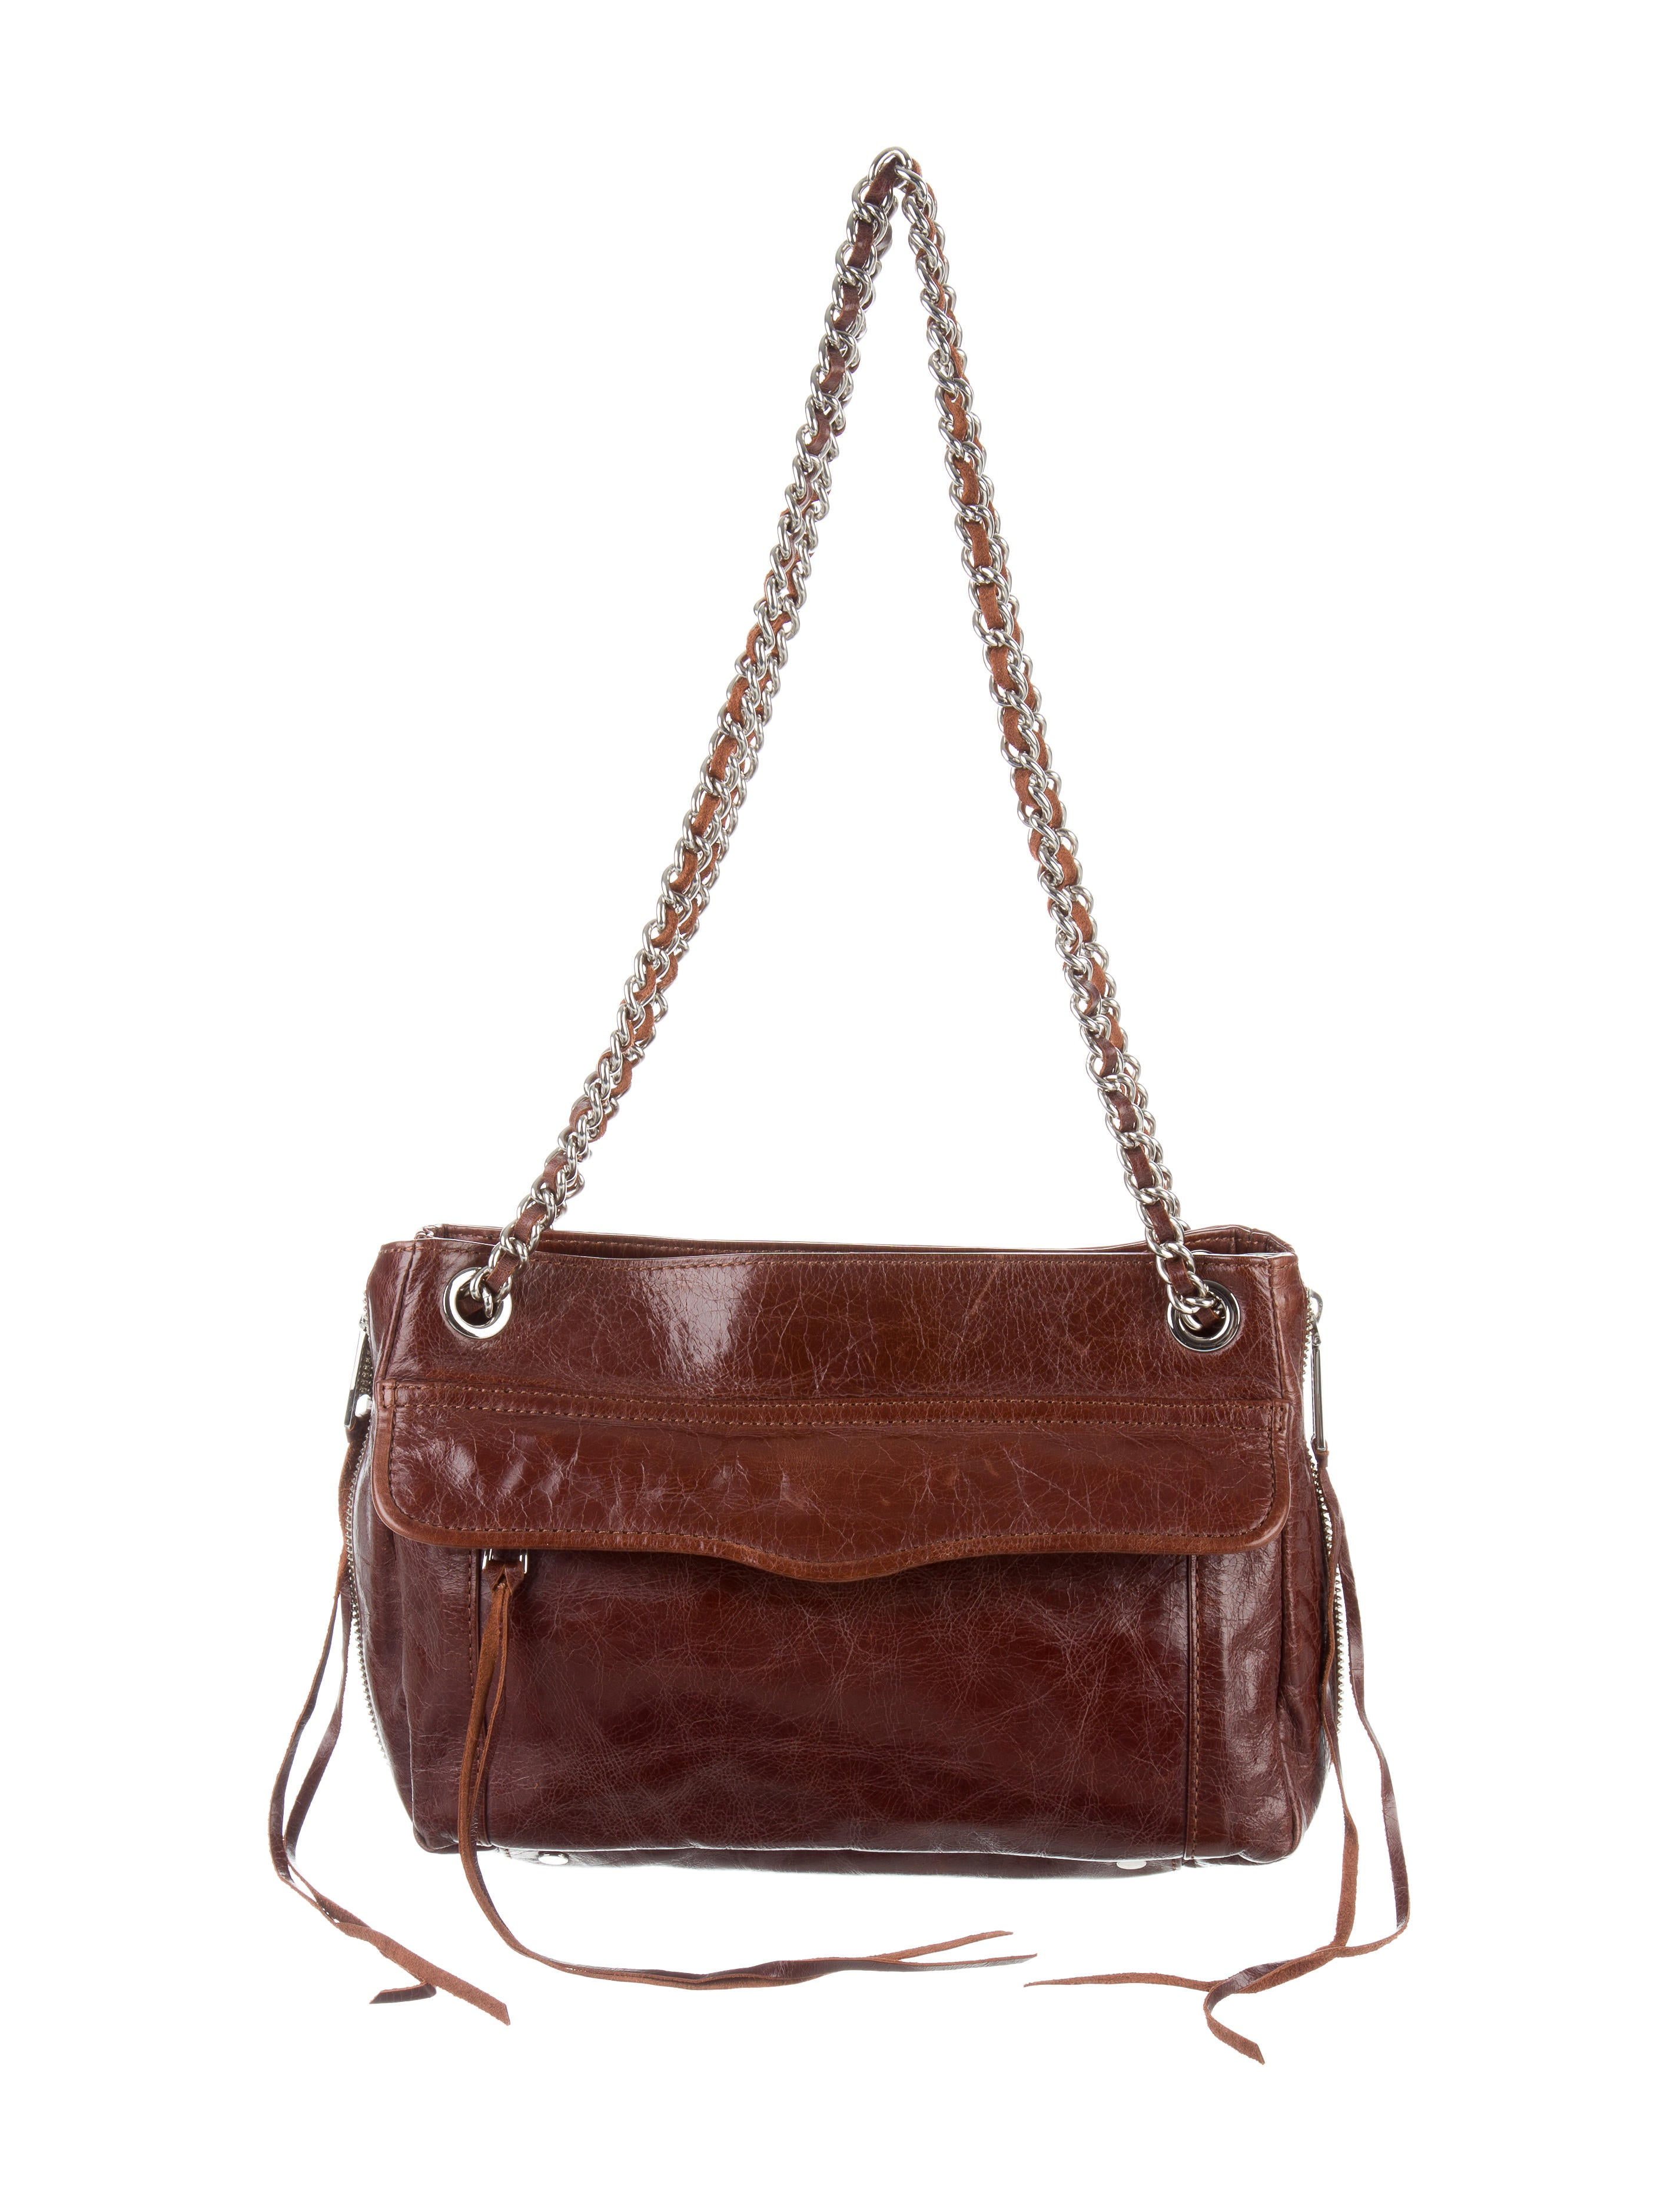 Shop women's Rebecca Minkoff Bags on sale now at Farfetch. Amazing discounts on Rebecca Minkoff available.